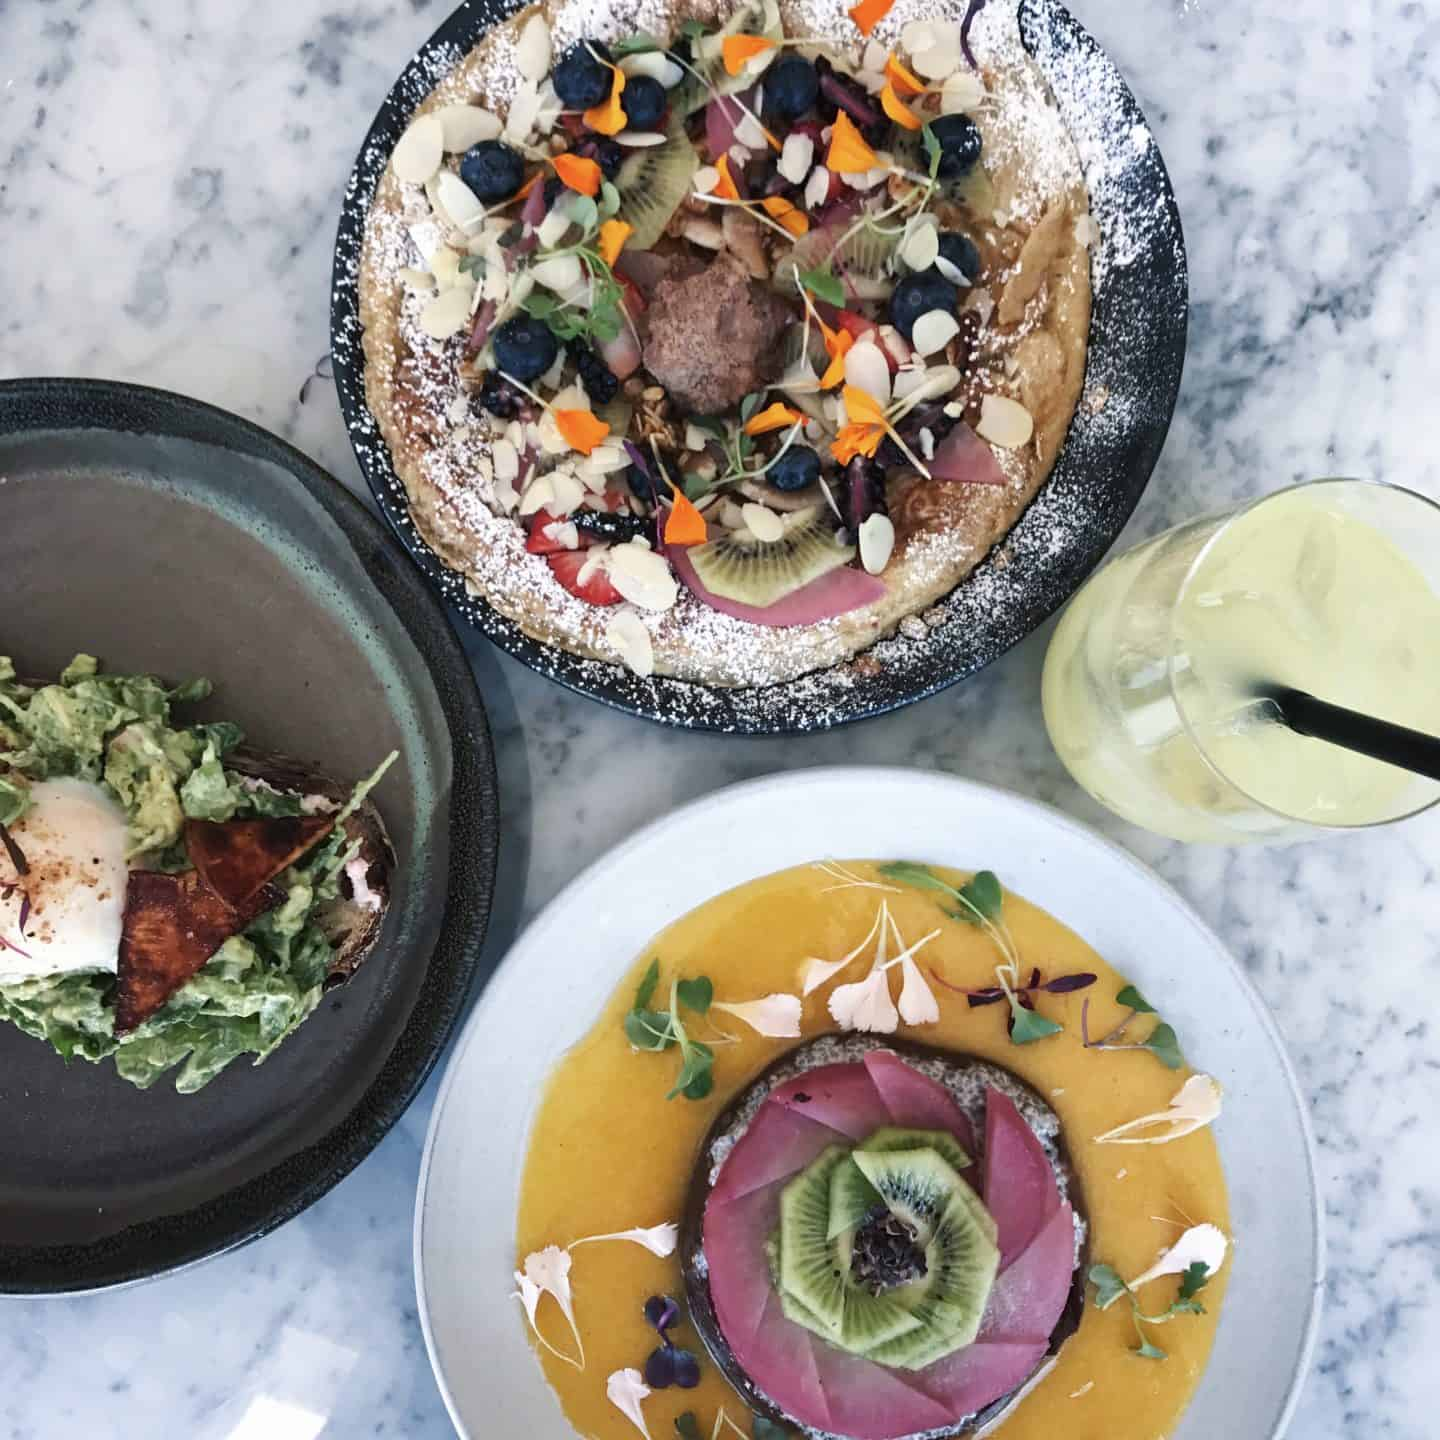 Baddies is one of the most Instagrammable brunch spots in Toronto